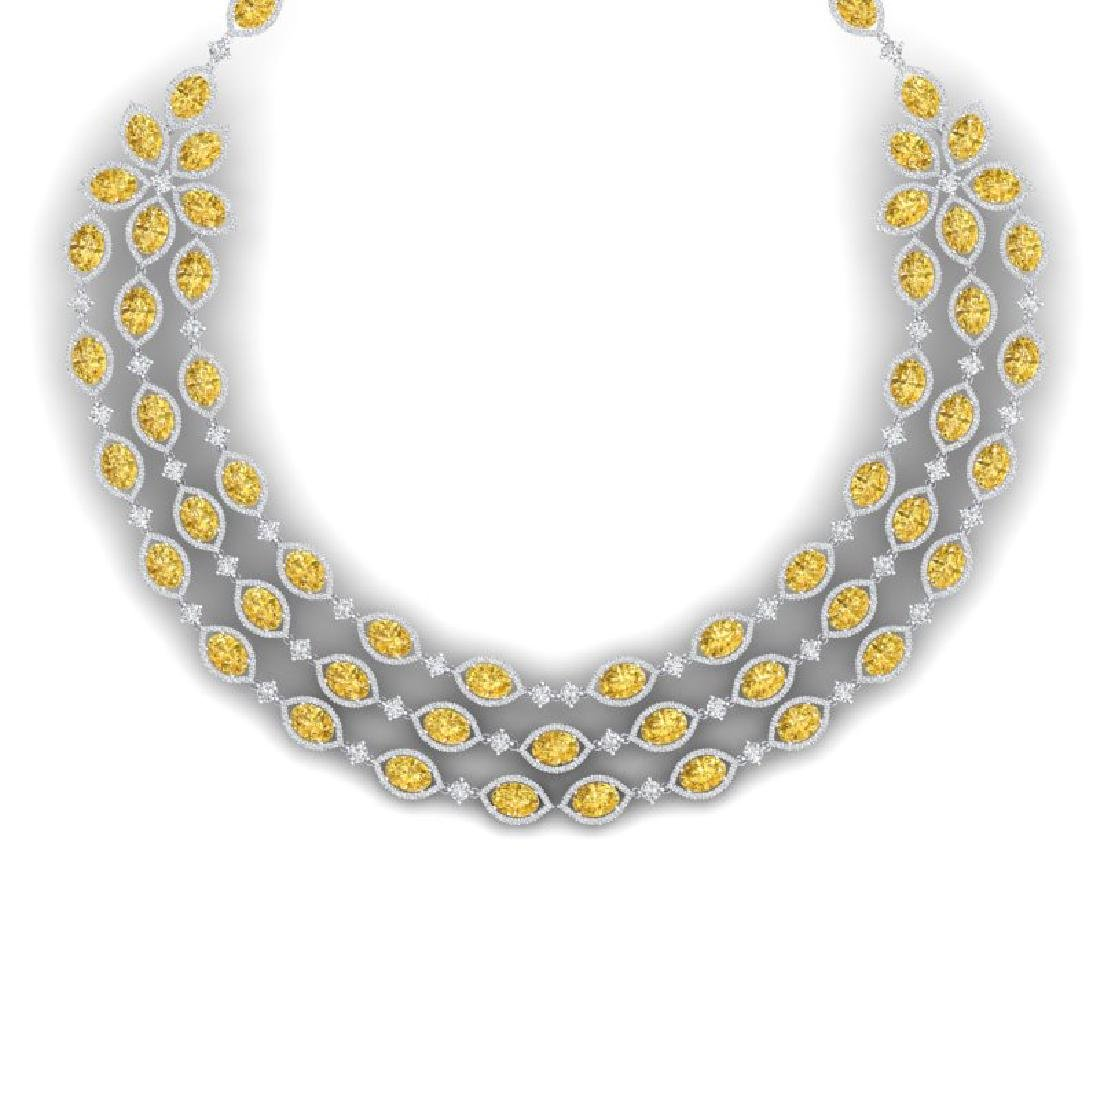 69.29 CTW Royalty Canary Citrine & VS Diamond Necklace - 2